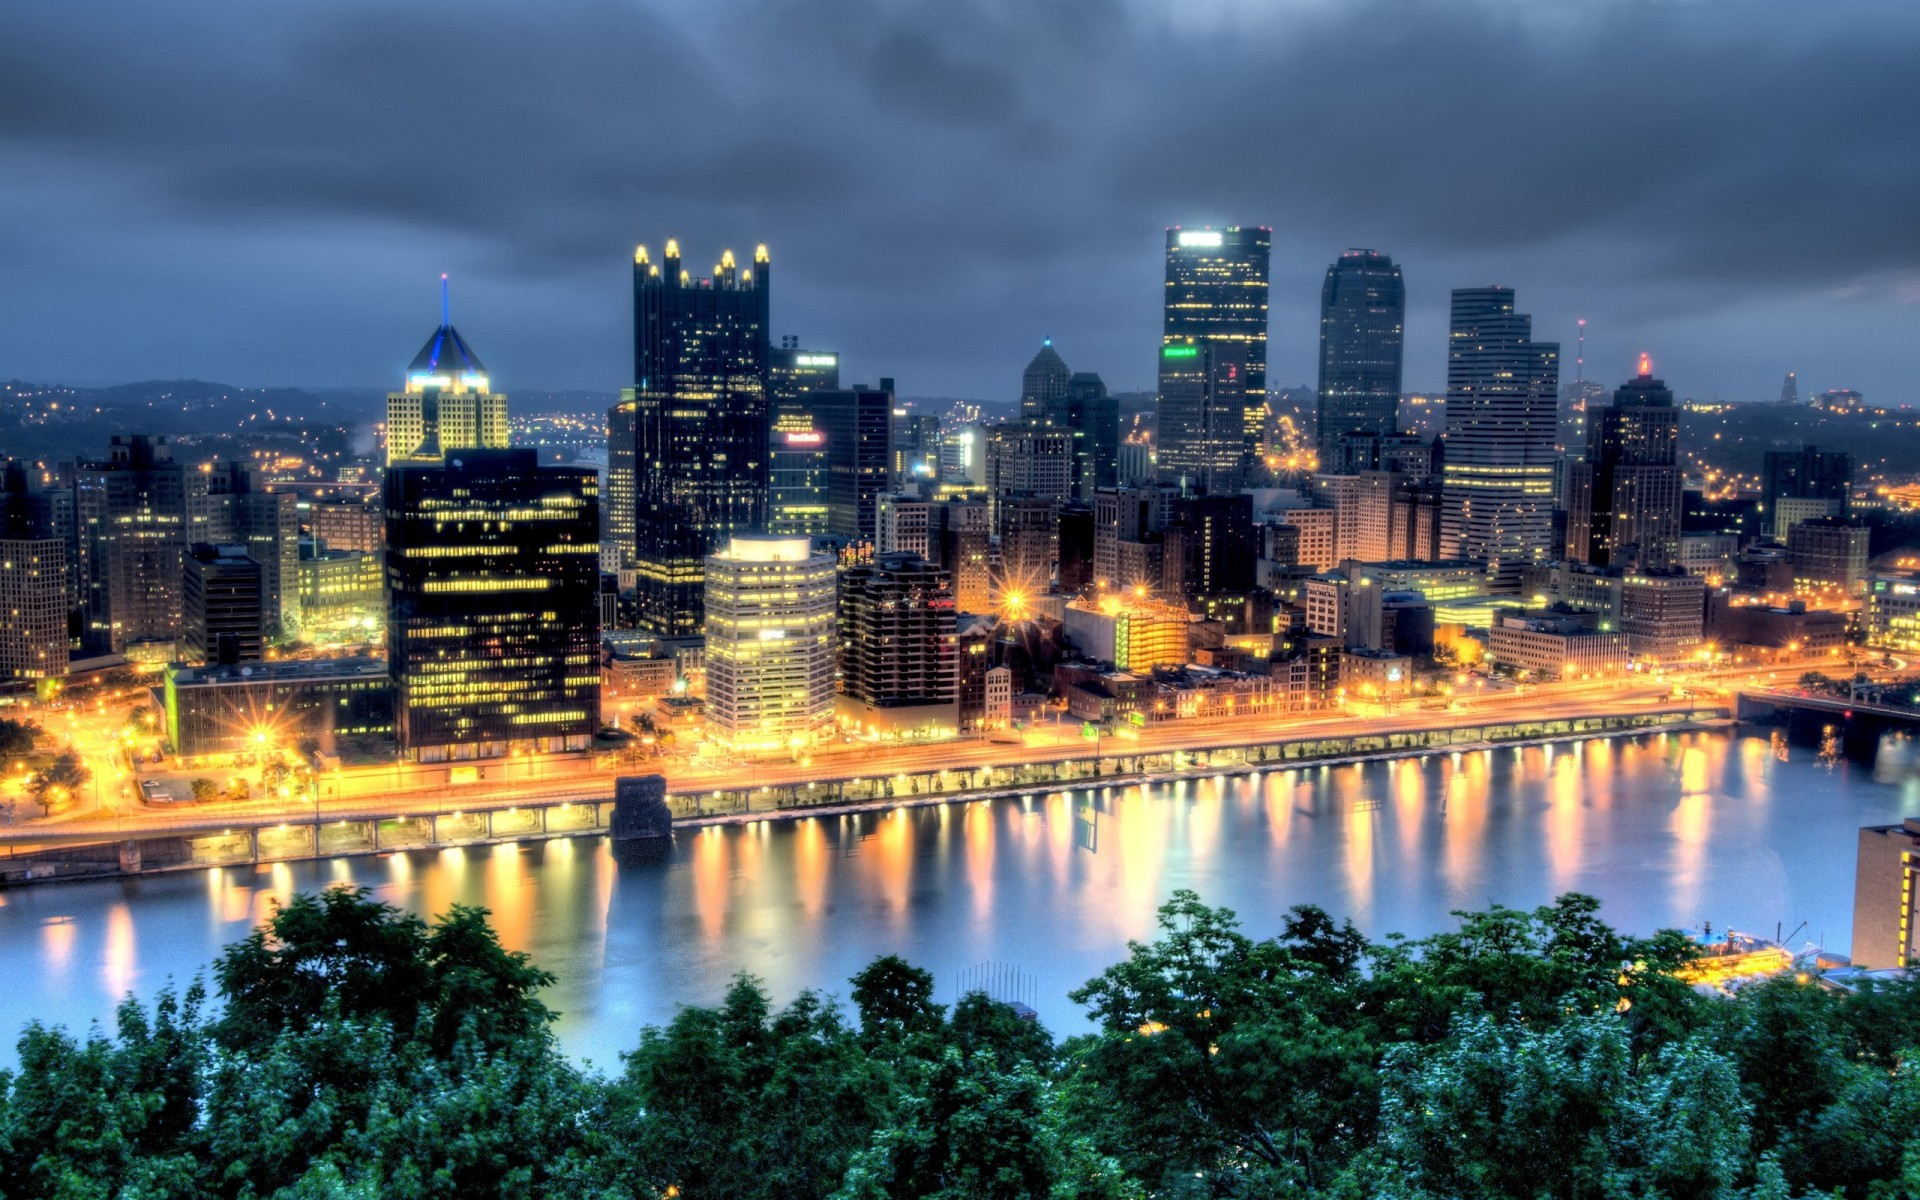 50 Beautiful Cities Pictures And Wallpapers: USA Pennsylvania Pittsburgh City Town Hdr Wallpaper